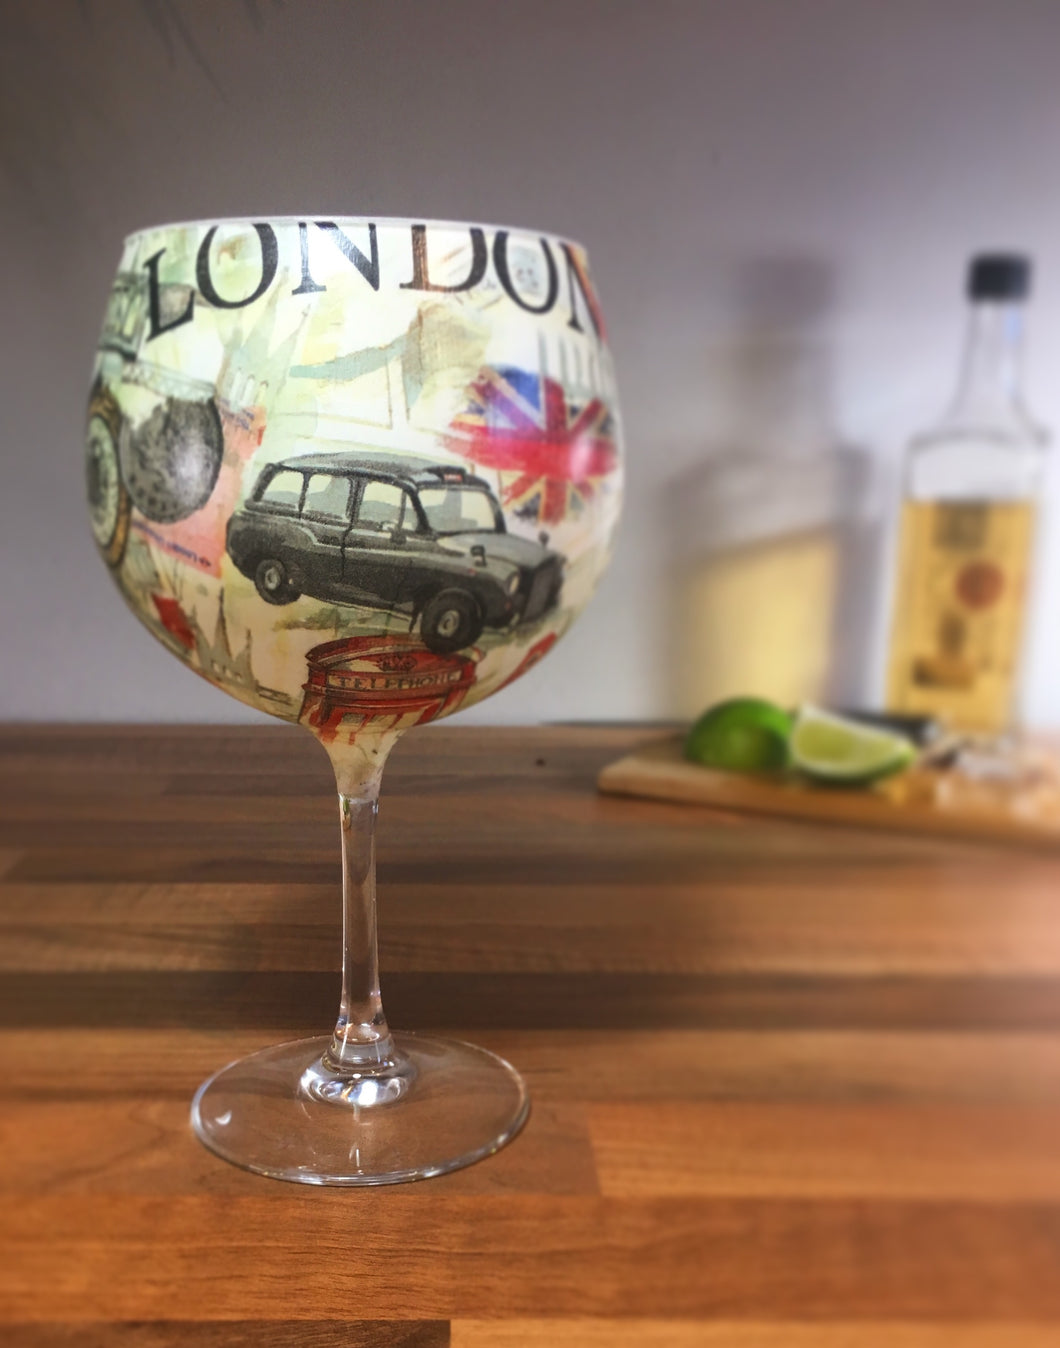 From Loft to Loved - gift for her - gift for women- gift for him - men's gift - London themed stemmed balloon gin glass or cocktail glass - unique gin lover's gift - handmade gift - decorative gin glass - patterned gin glass - shop in Sedgefield County Durham